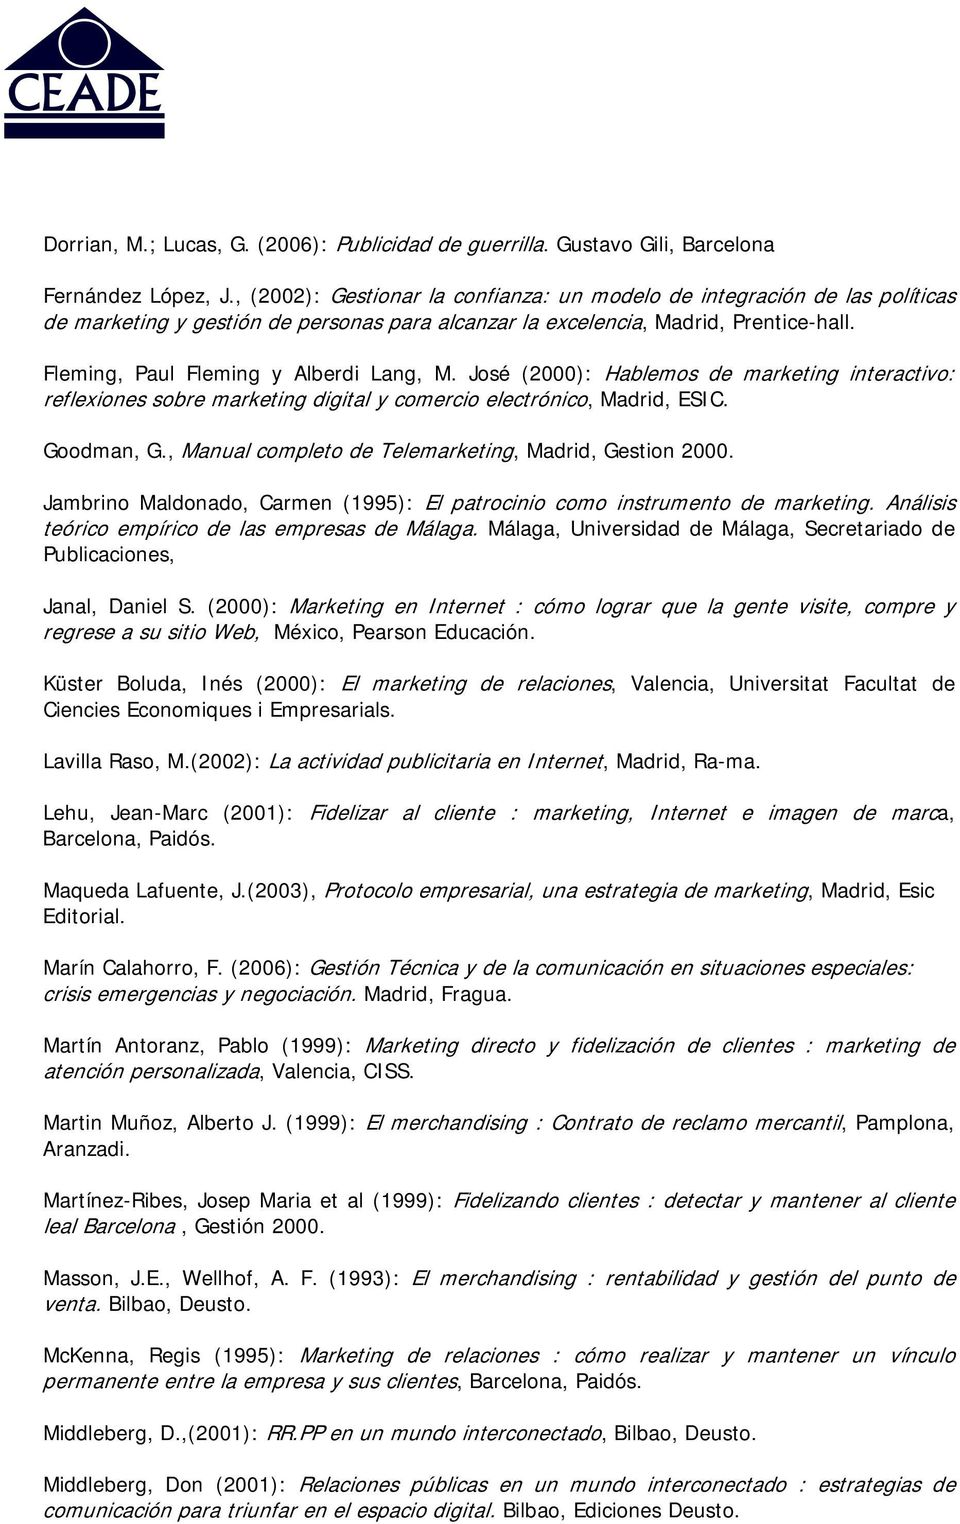 Fleming, Paul Fleming y Alberdi Lang, M. José (2000): Hablemos de marketing interactivo: reflexiones sobre marketing digital y comercio electrónico, Madrid, ESIC. Goodman, G.